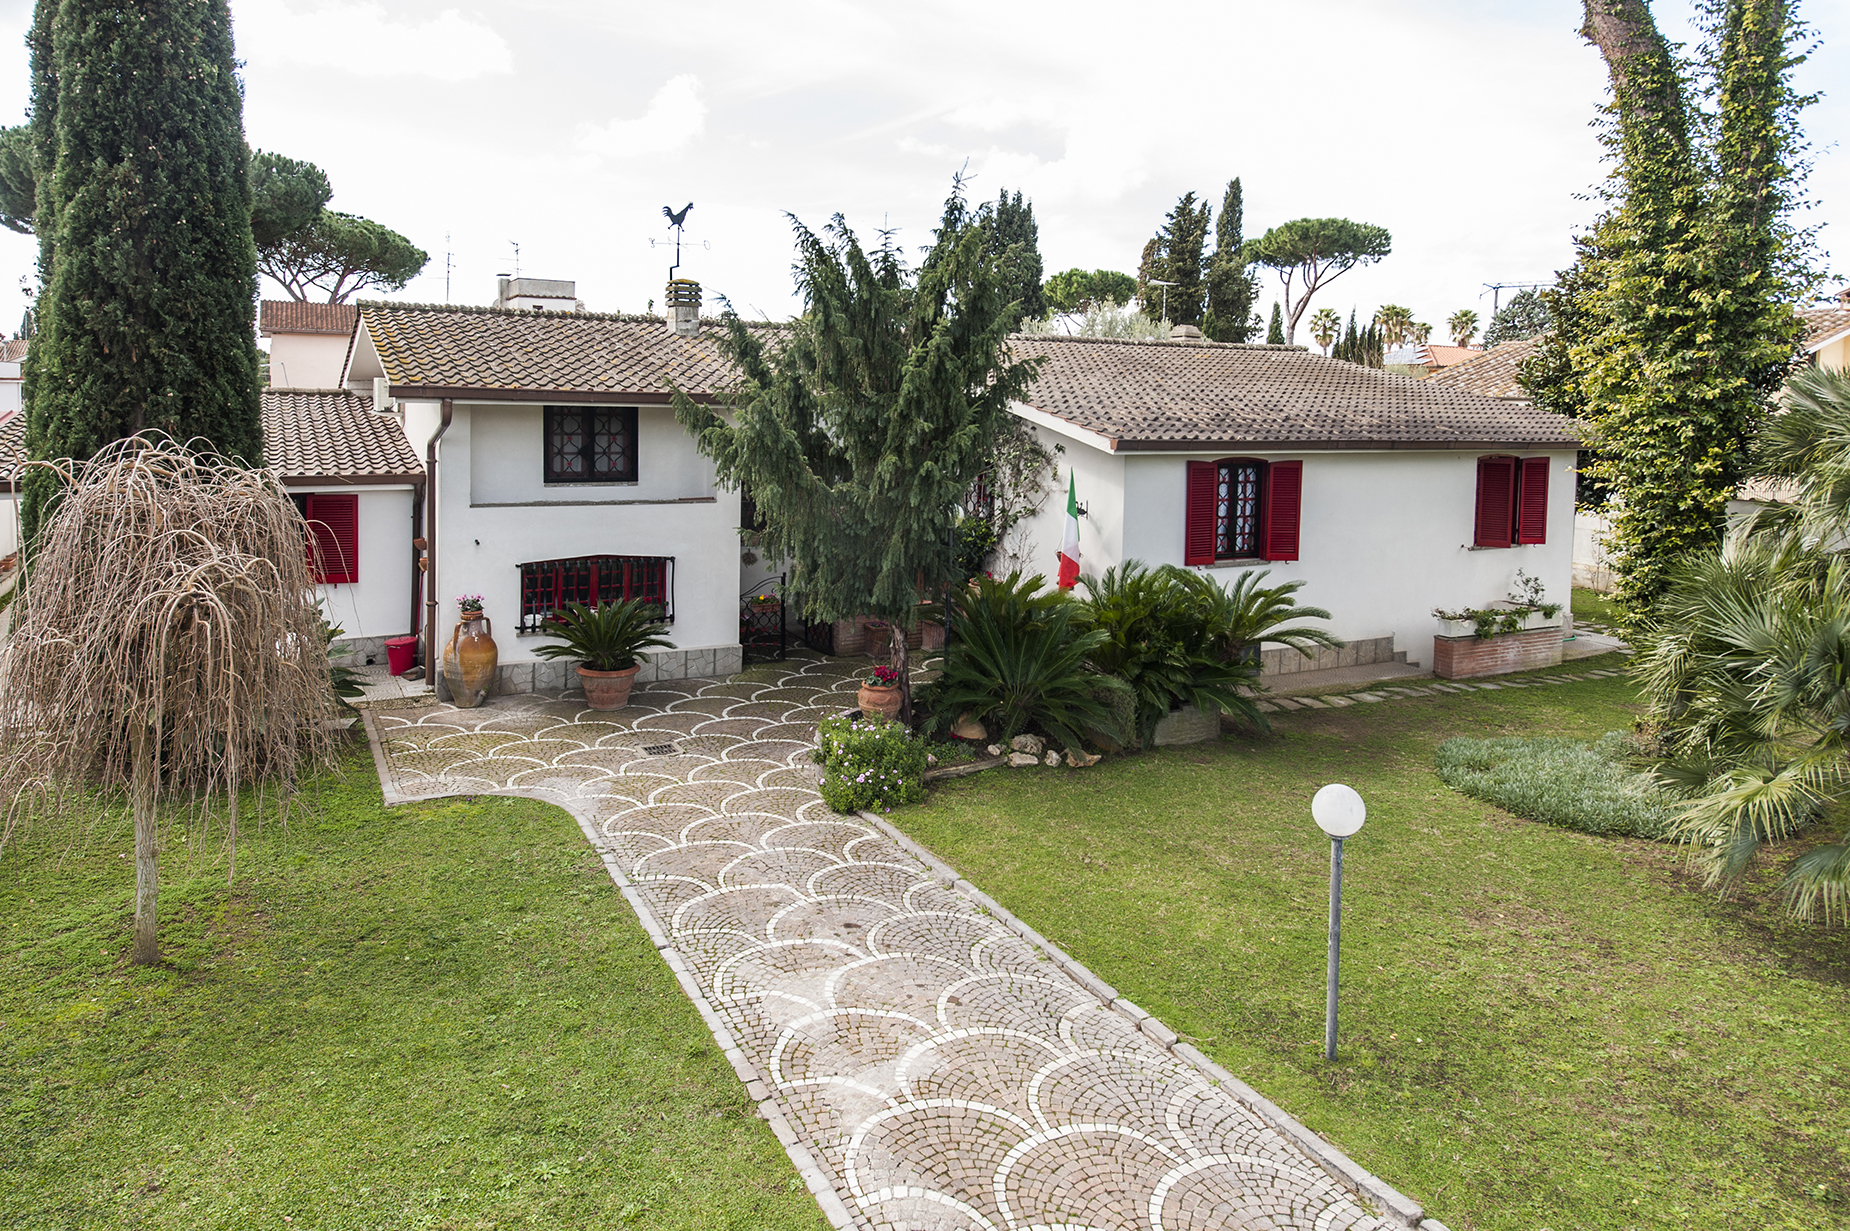 VILLA WITH LARGE GARDEN IN THE EUR INFERNETTO NEIGHBORHOOD